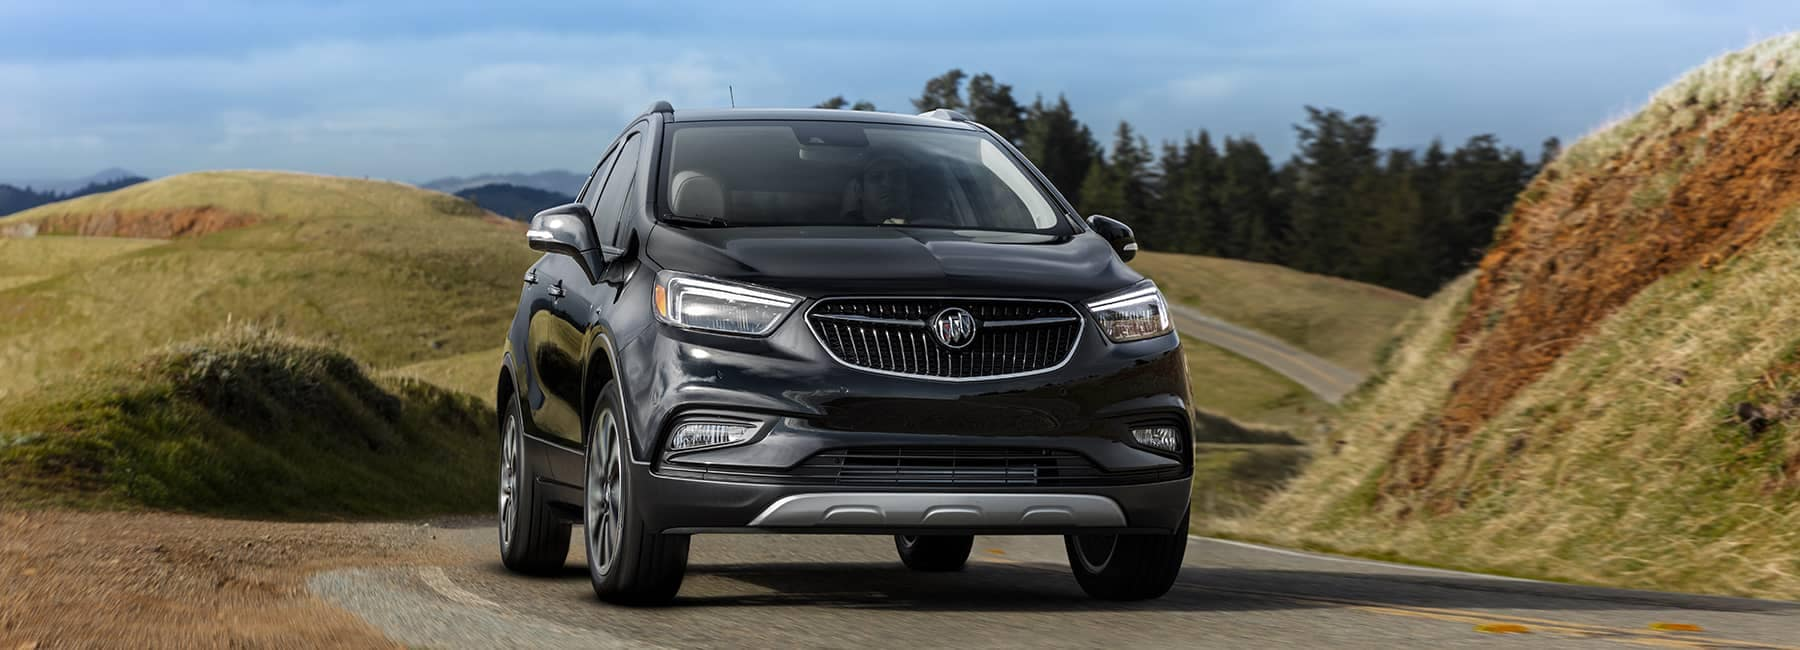 Black 2020 Buick Encore drives country road